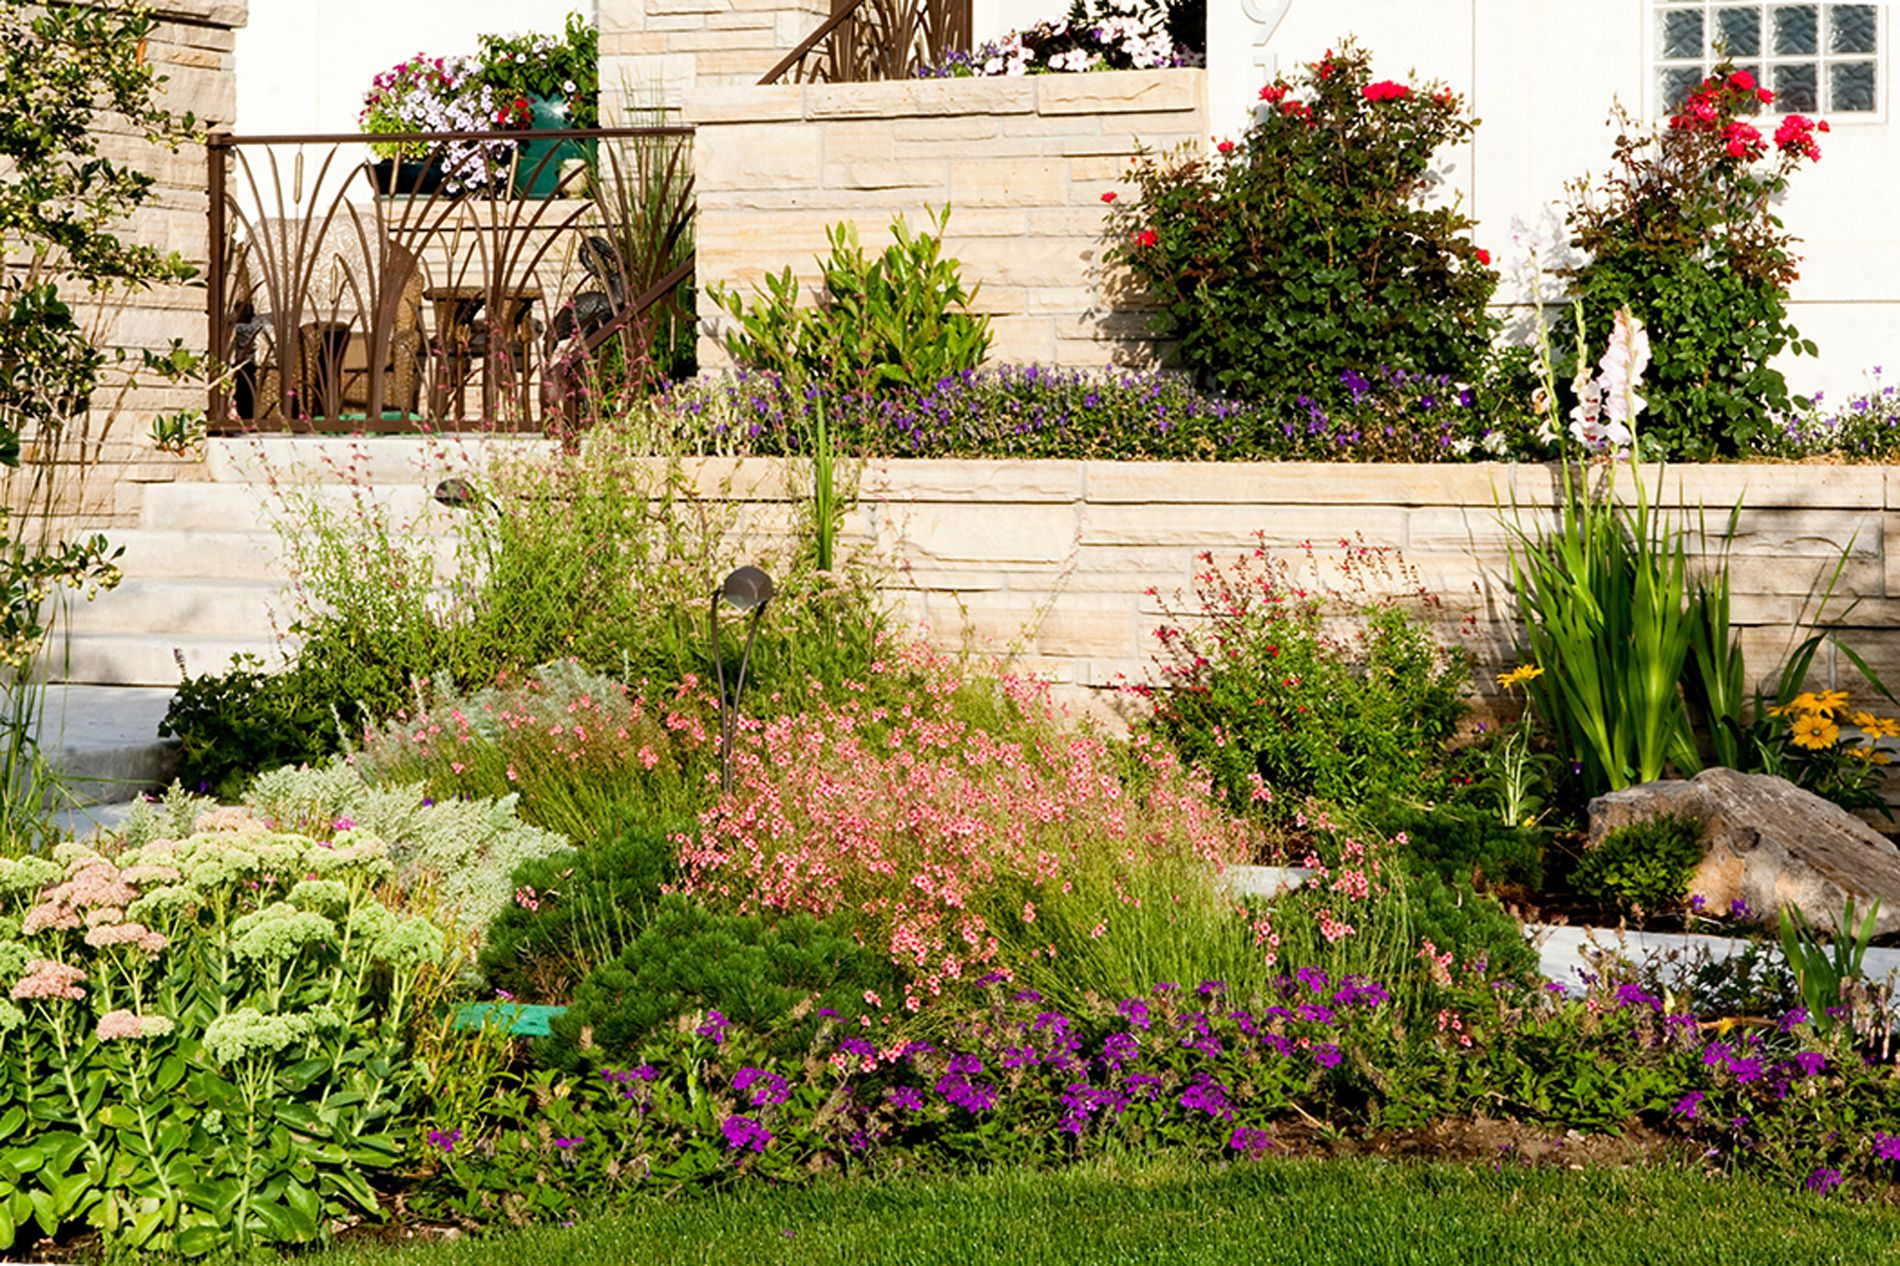 Properly maintained landscape plants